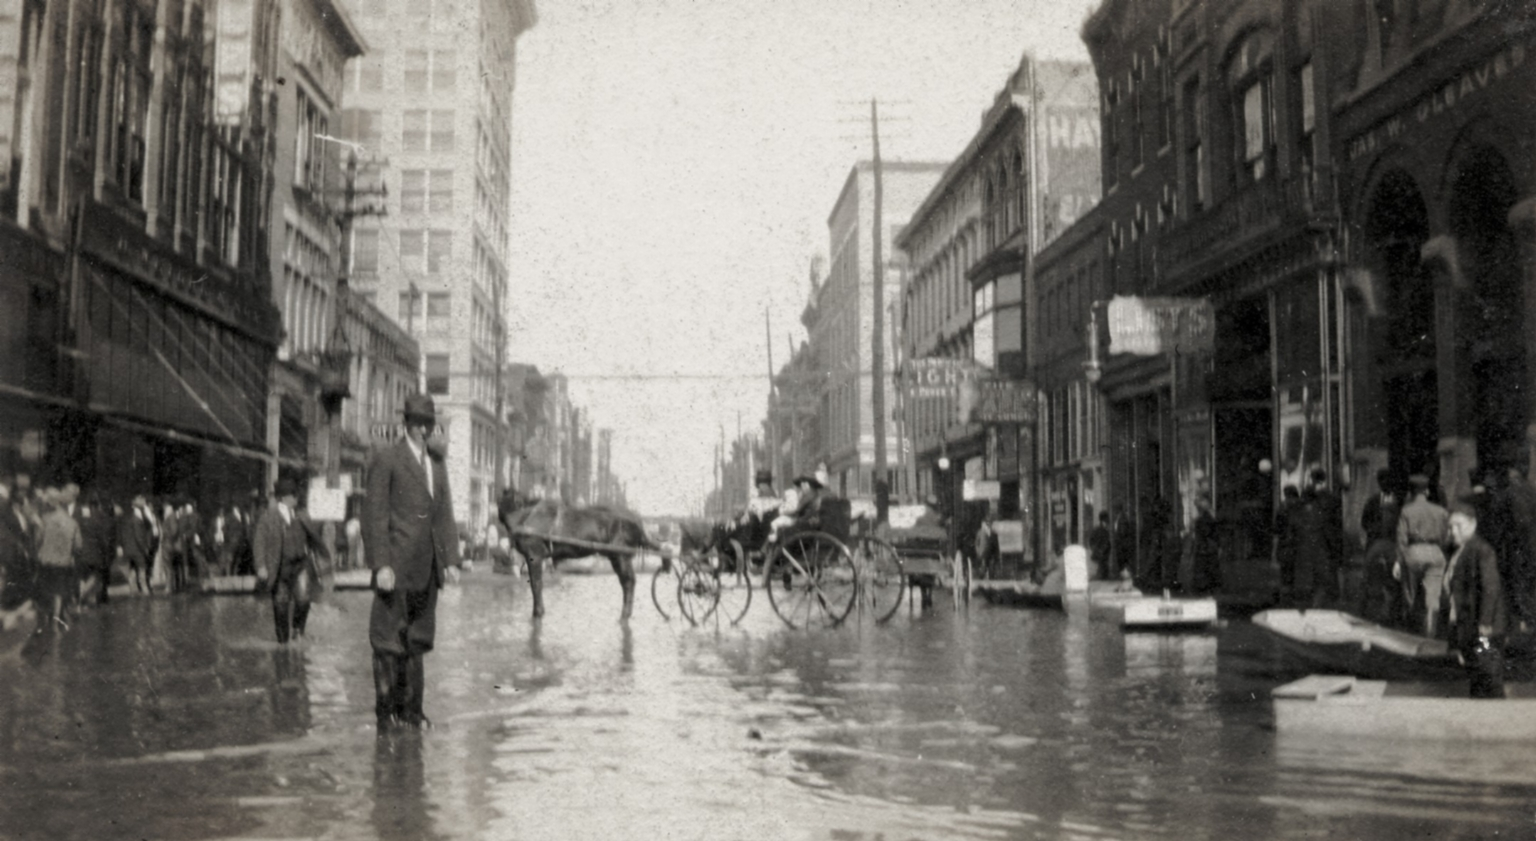 View of people on Broadway near 4th Street in Paducah (KY) during April 1913 flood